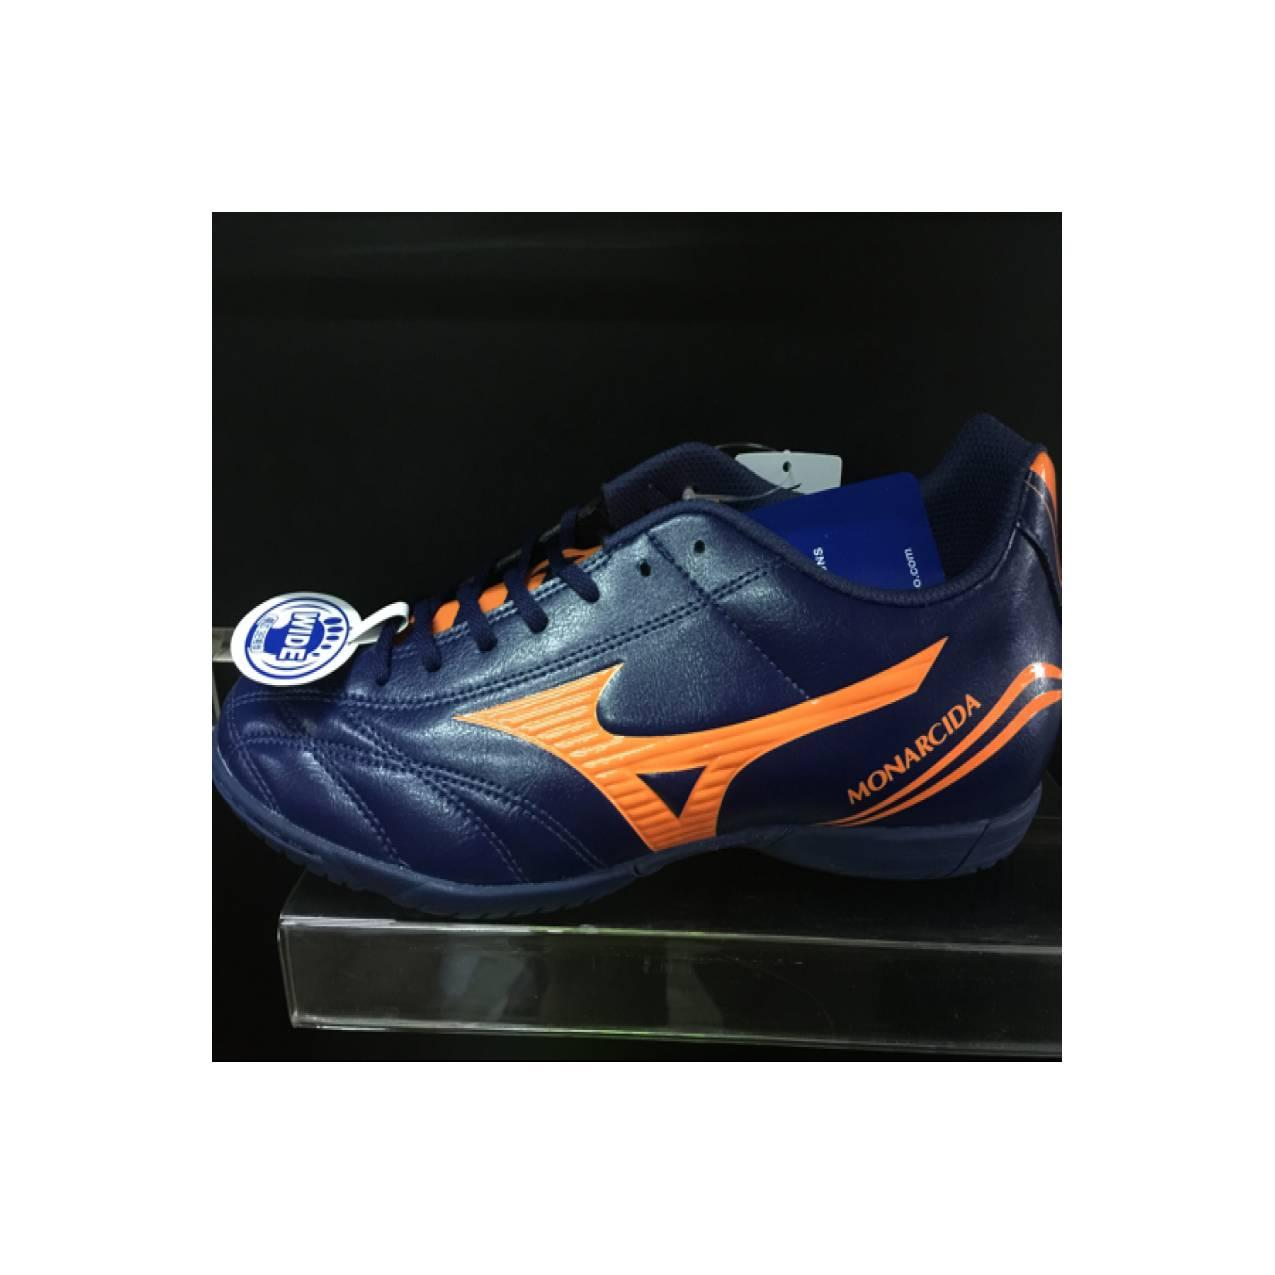 Sepatu futsal mizuno original monarcida FS IN wide blue depths murah